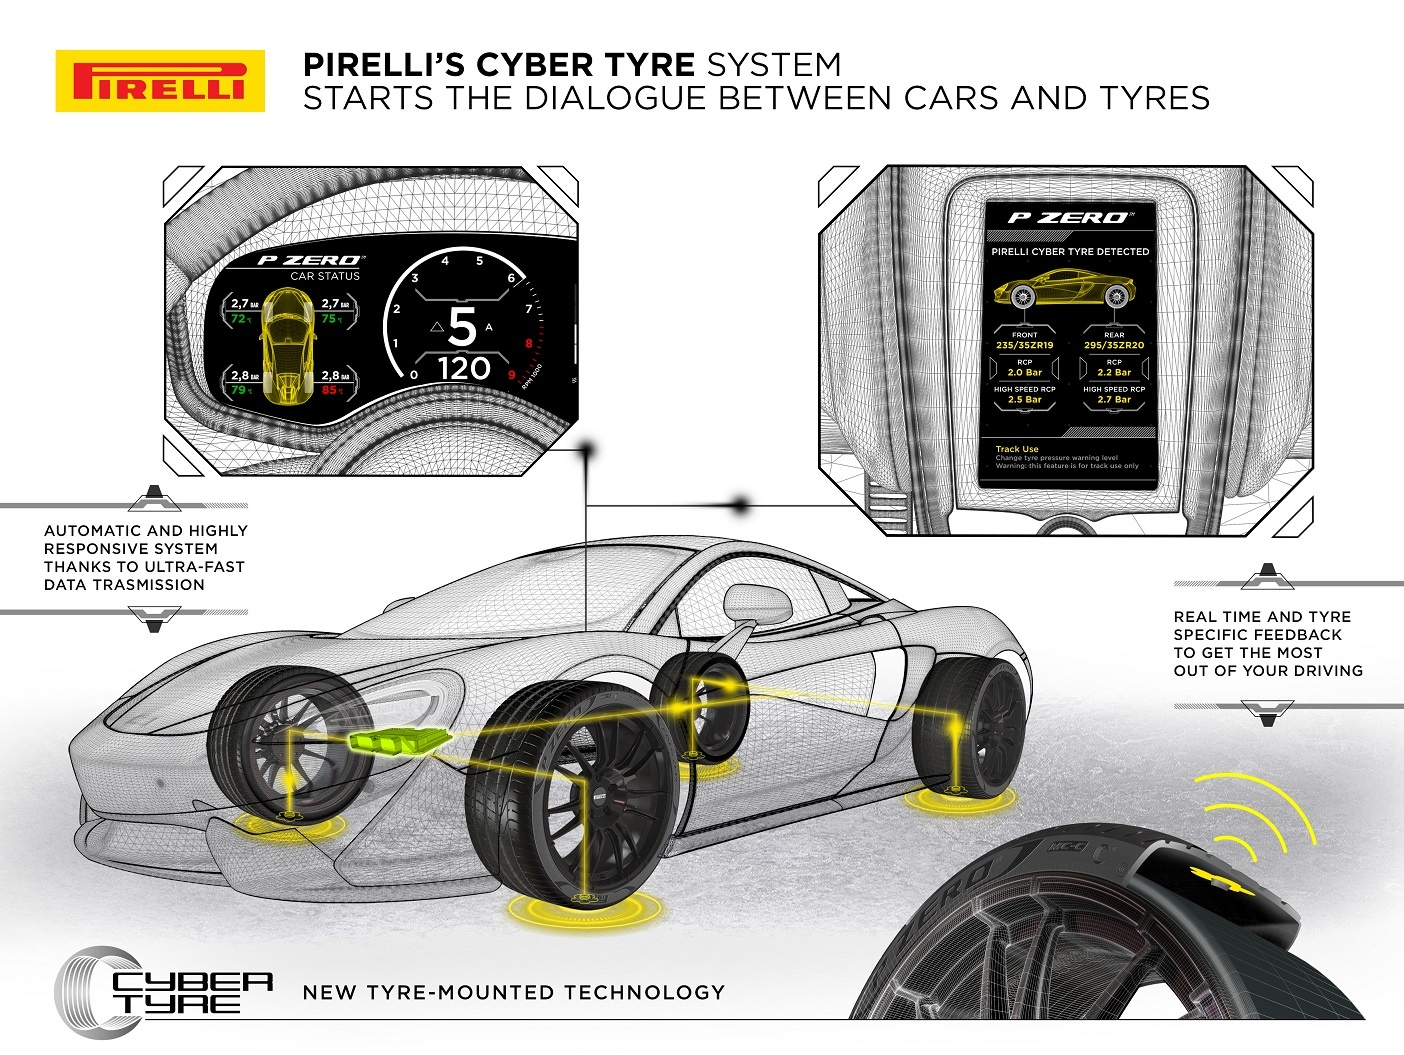 Pirelli supplies intelligent tyres equipped with sensors as standard for the first time on the mclaren artura